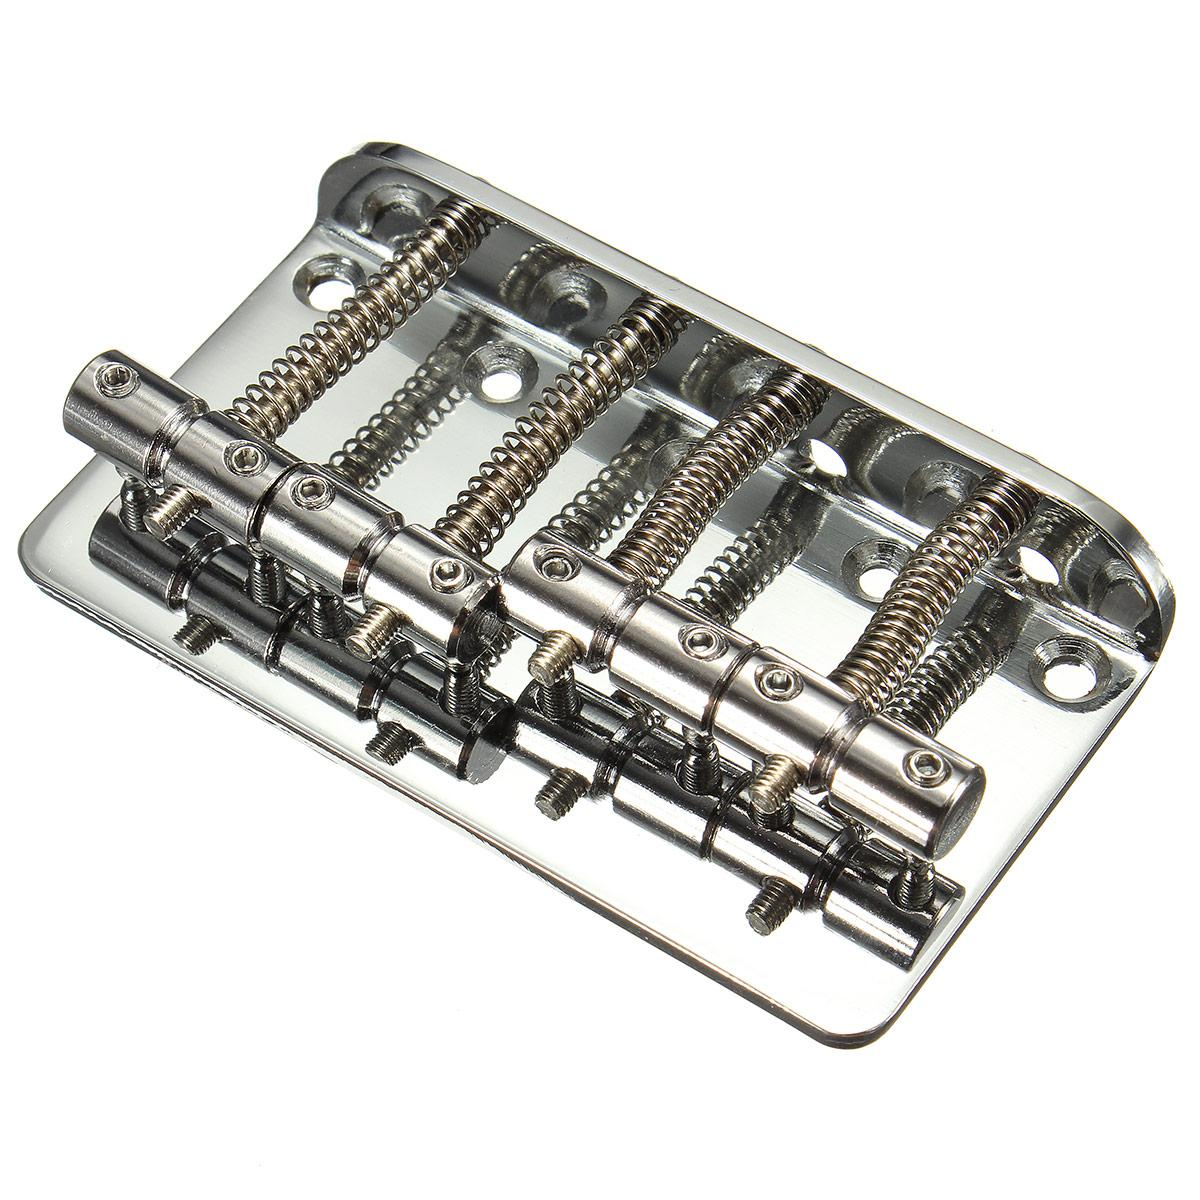 New Silver Metal 4 String Bass Bridge Chrome Vintage Style Bridge For Fender Jazz or P Bass Guitar With 5 Screws+Bridge+Wrenches a set chrome vintage shape saddle bridge for 5 string electric bass guitar top load or strings through body